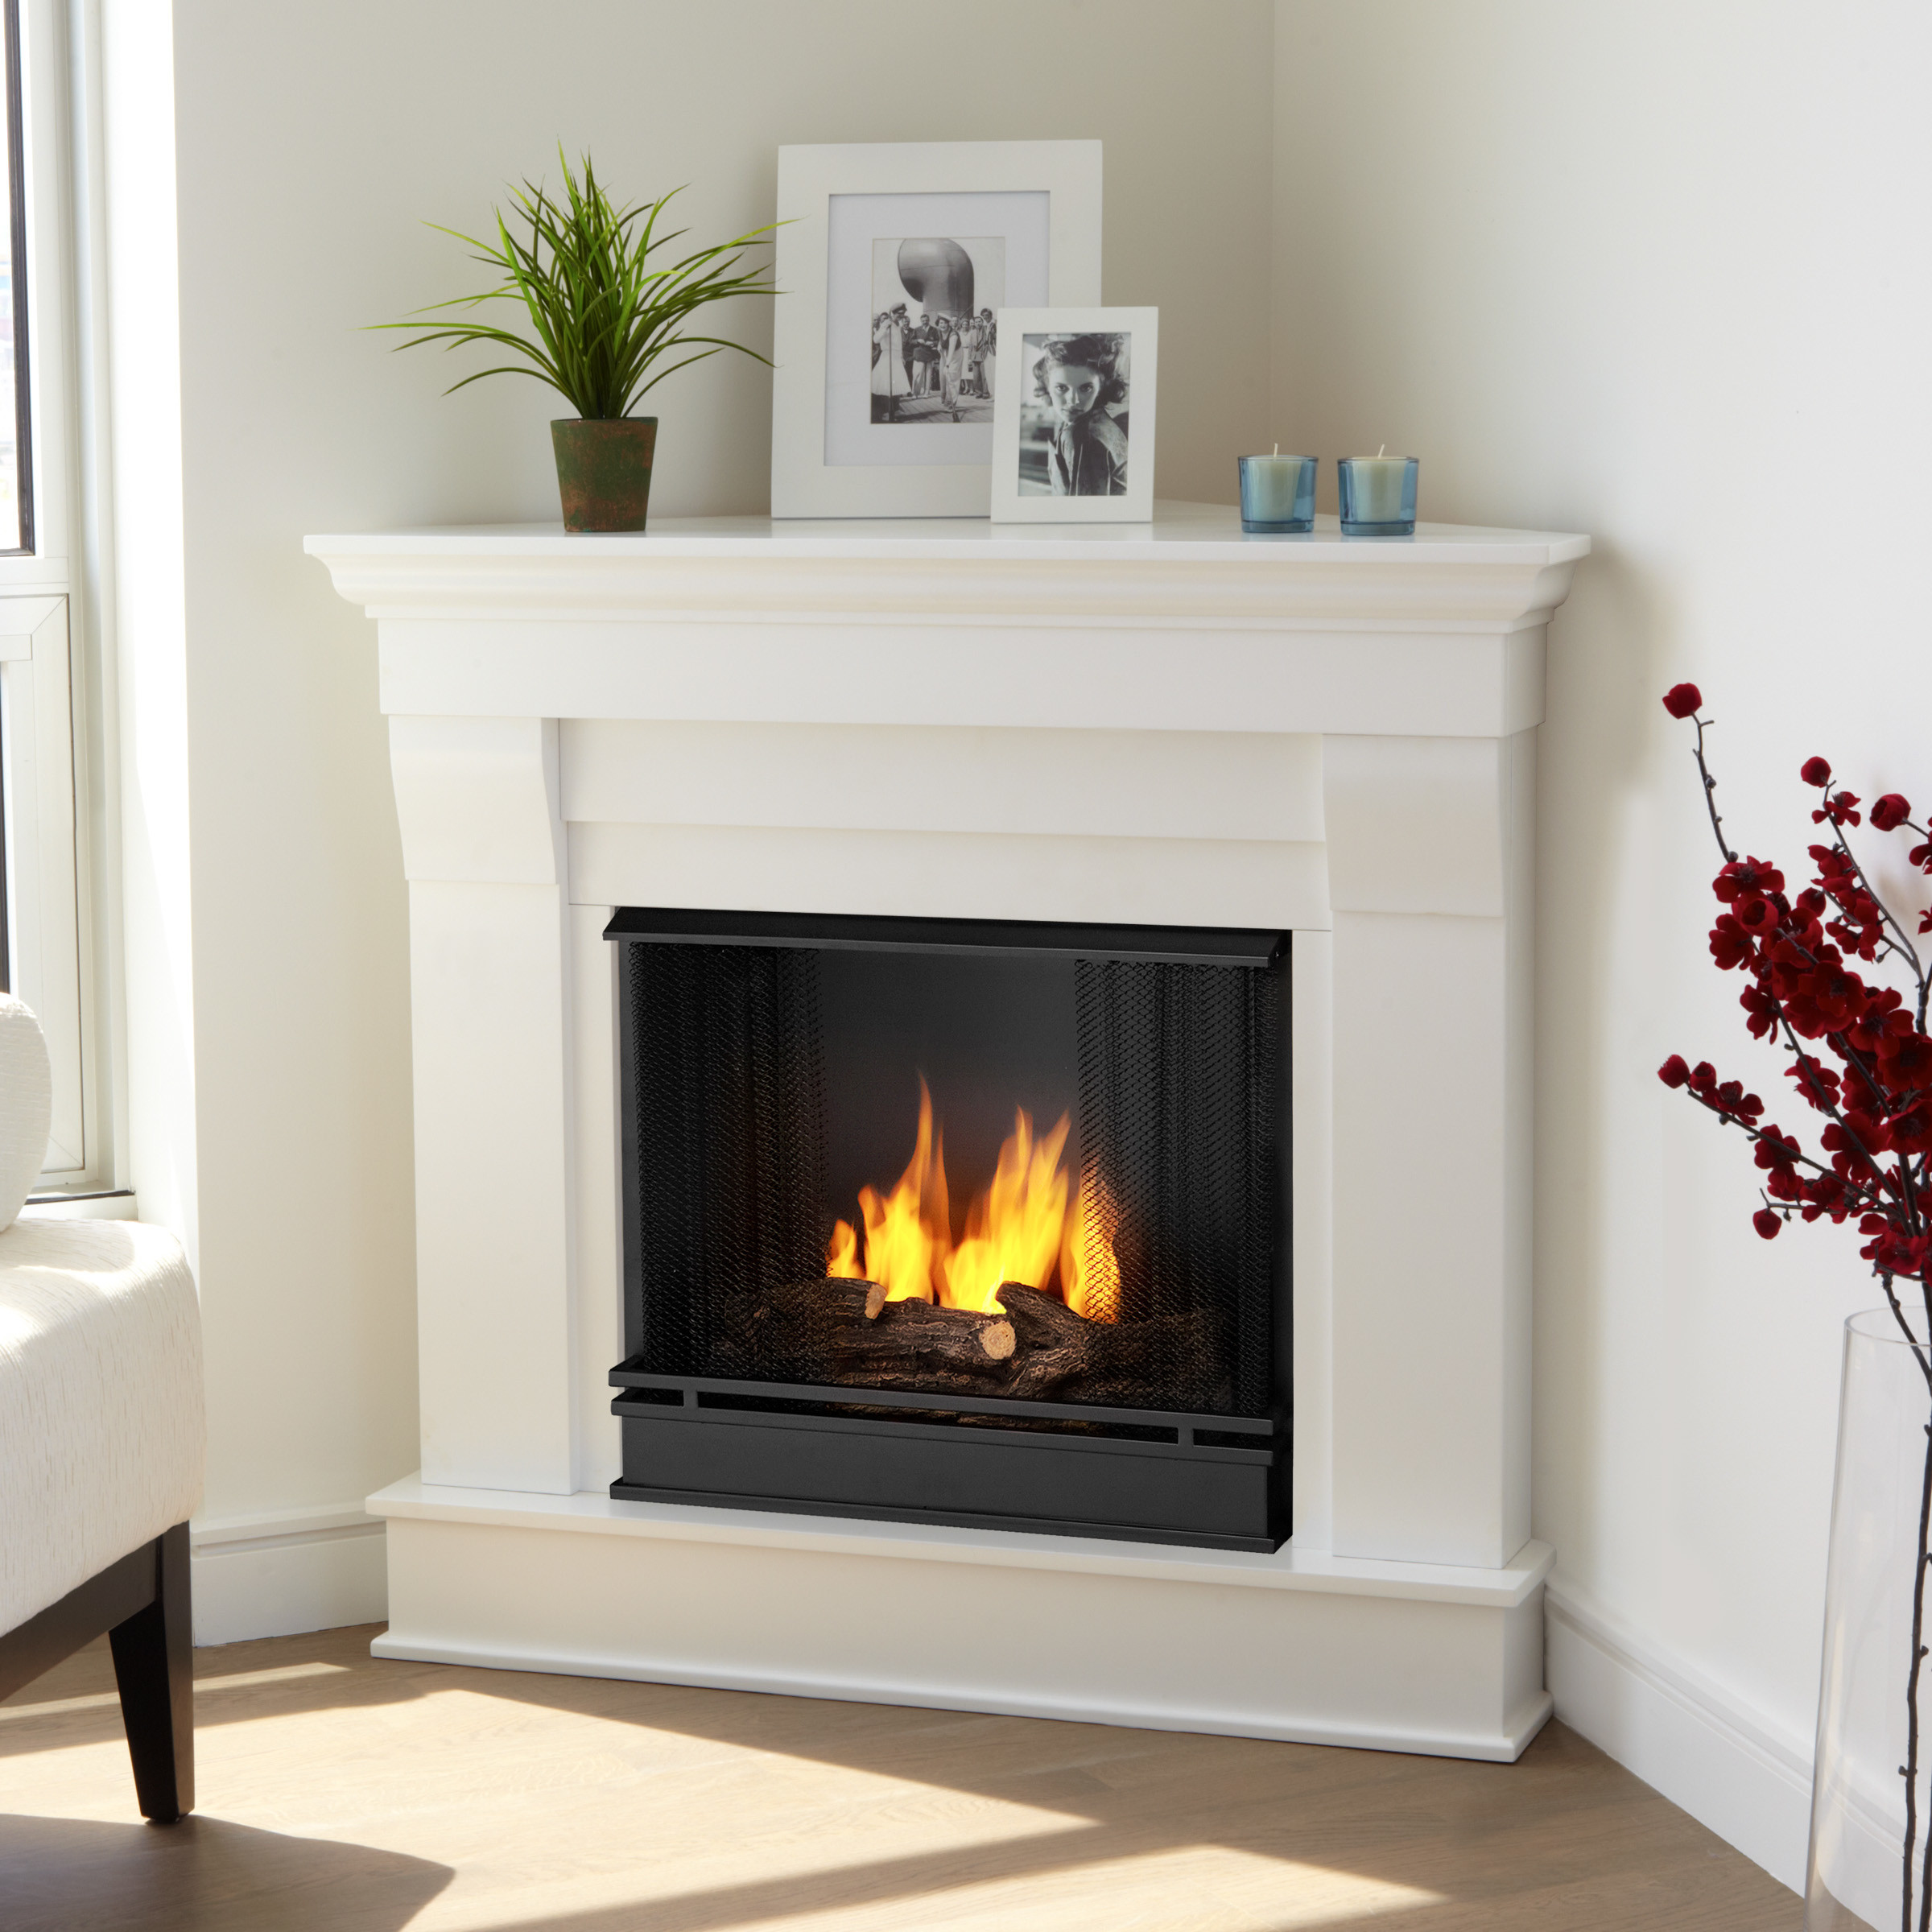 Best ideas about Real Flame Fireplace . Save or Pin Real Flame Chateau Corner Gel Fuel Fireplace & Reviews Now.